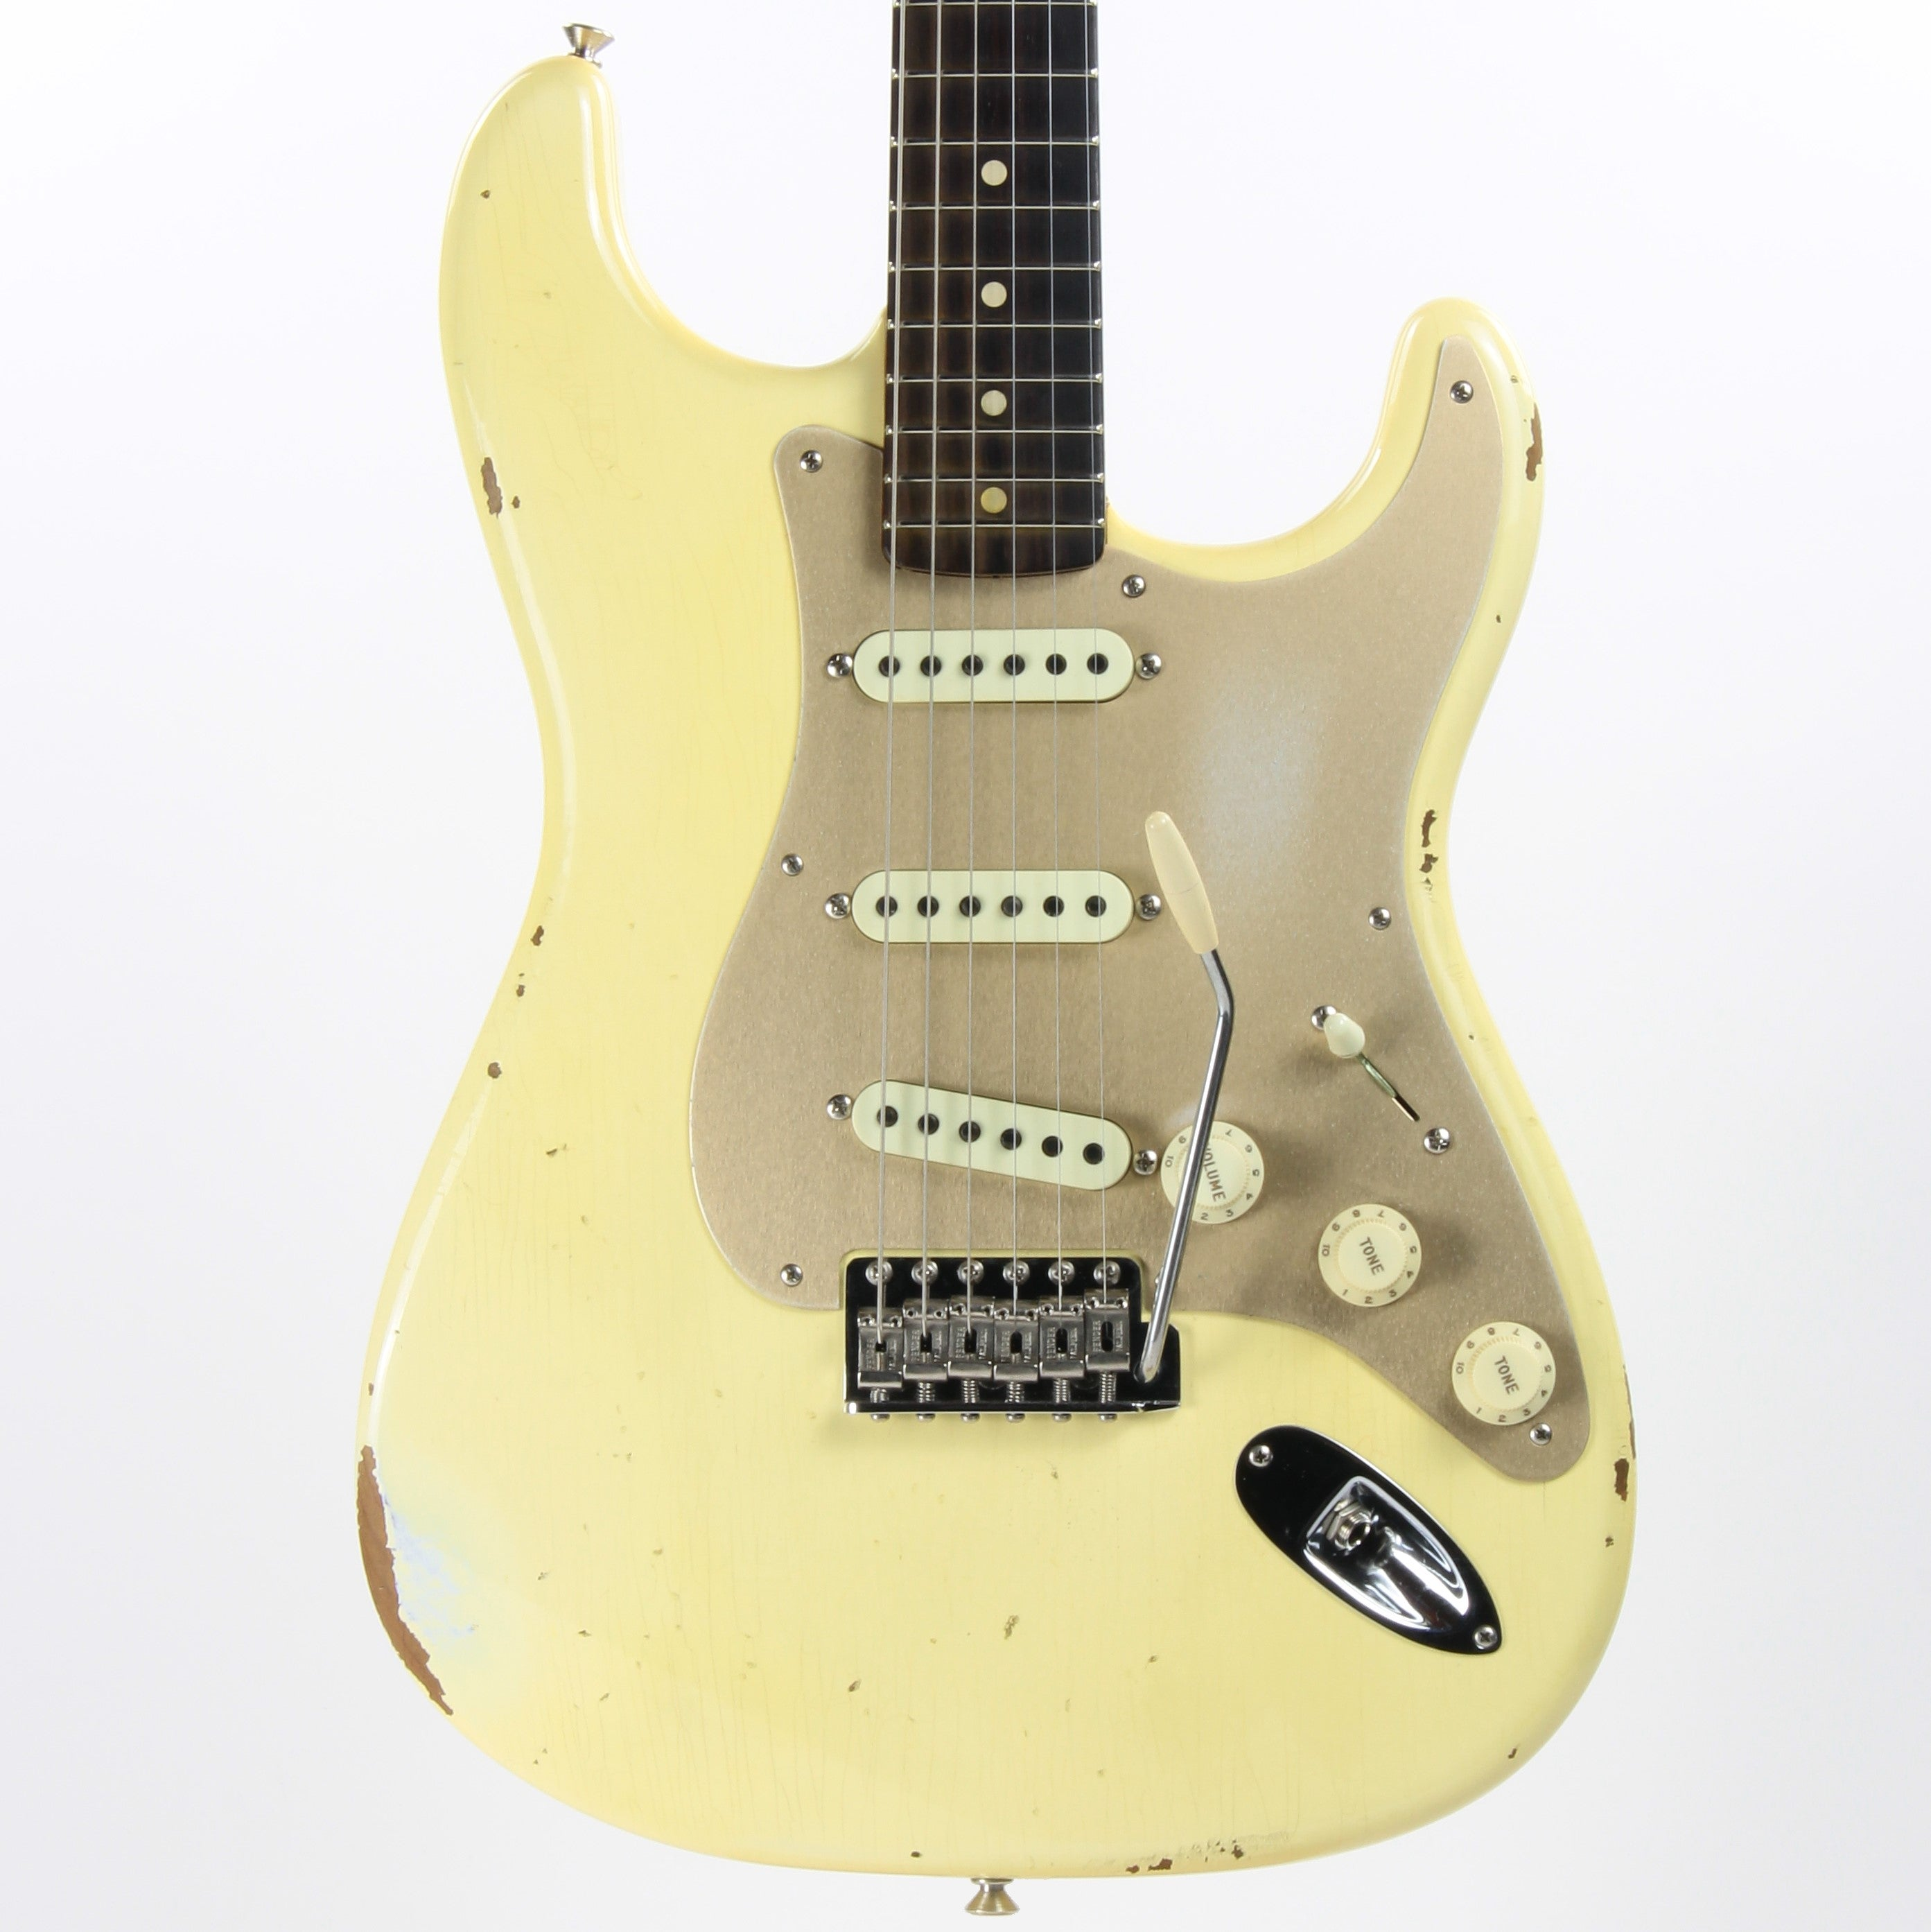 2017 NAMM Fender Custom Shop Relic 30th Anniversary 1960 Roasted Stratocaster LTD Aged Vintage White Birdseye Neck